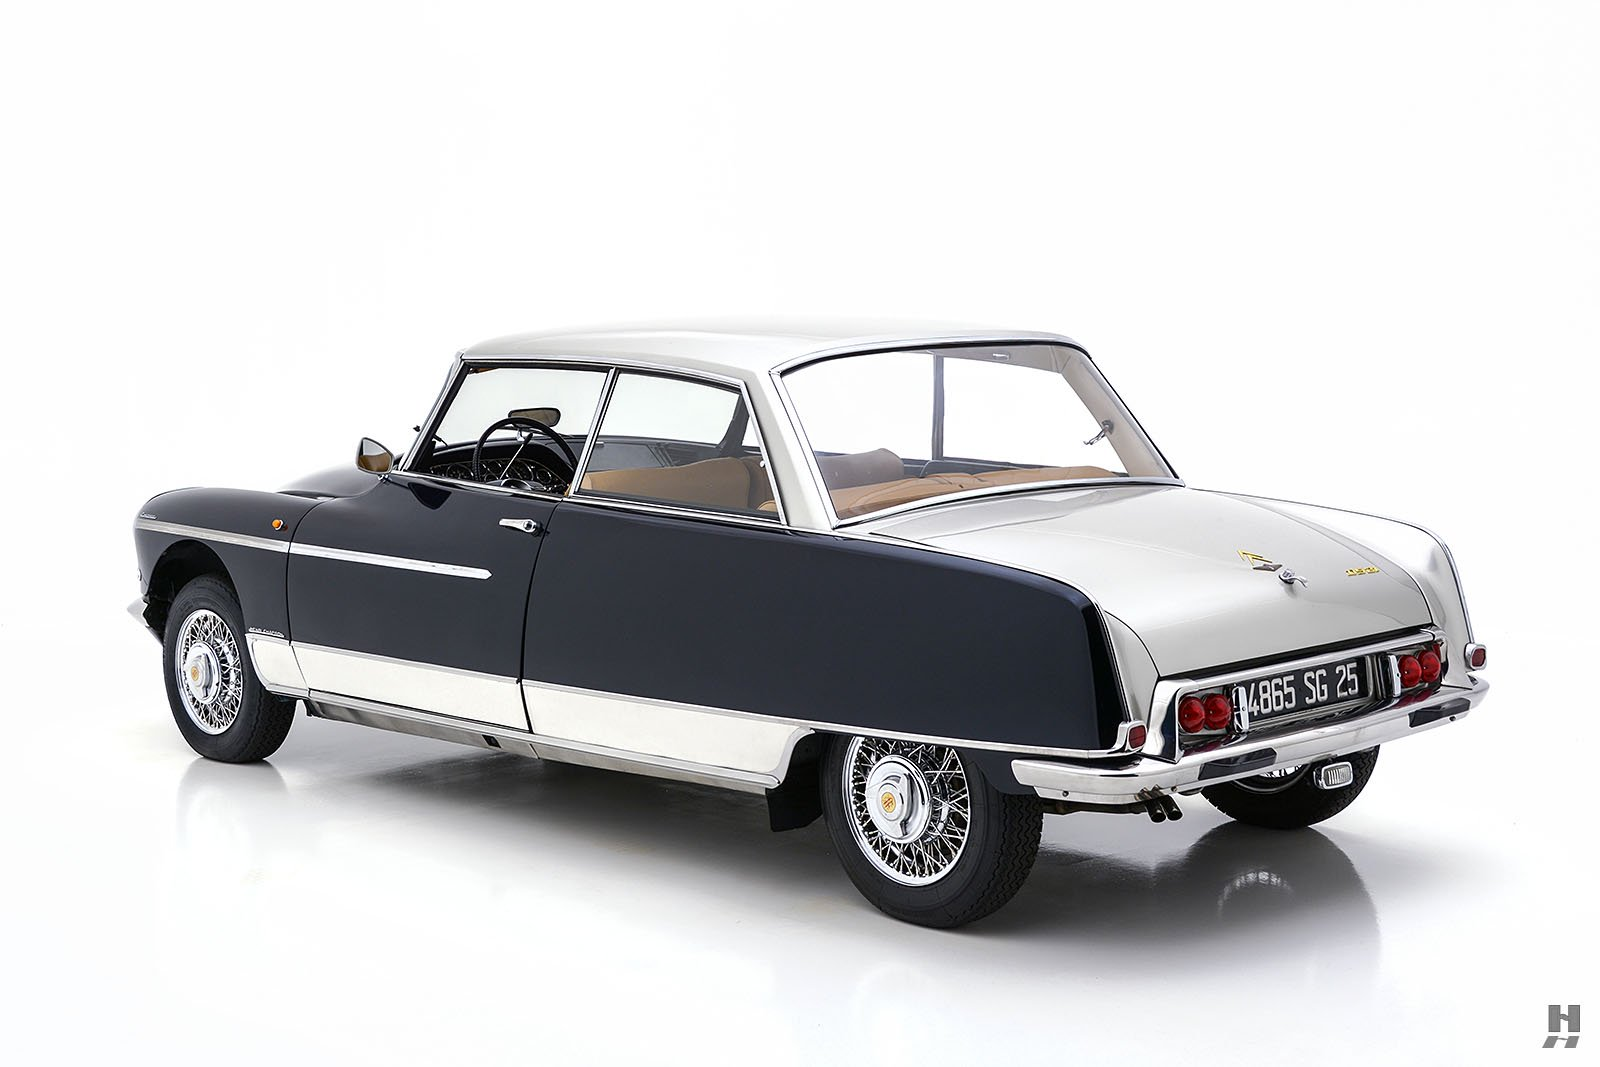 Citroen-DS21-Concorde-coupe-for-sale-8